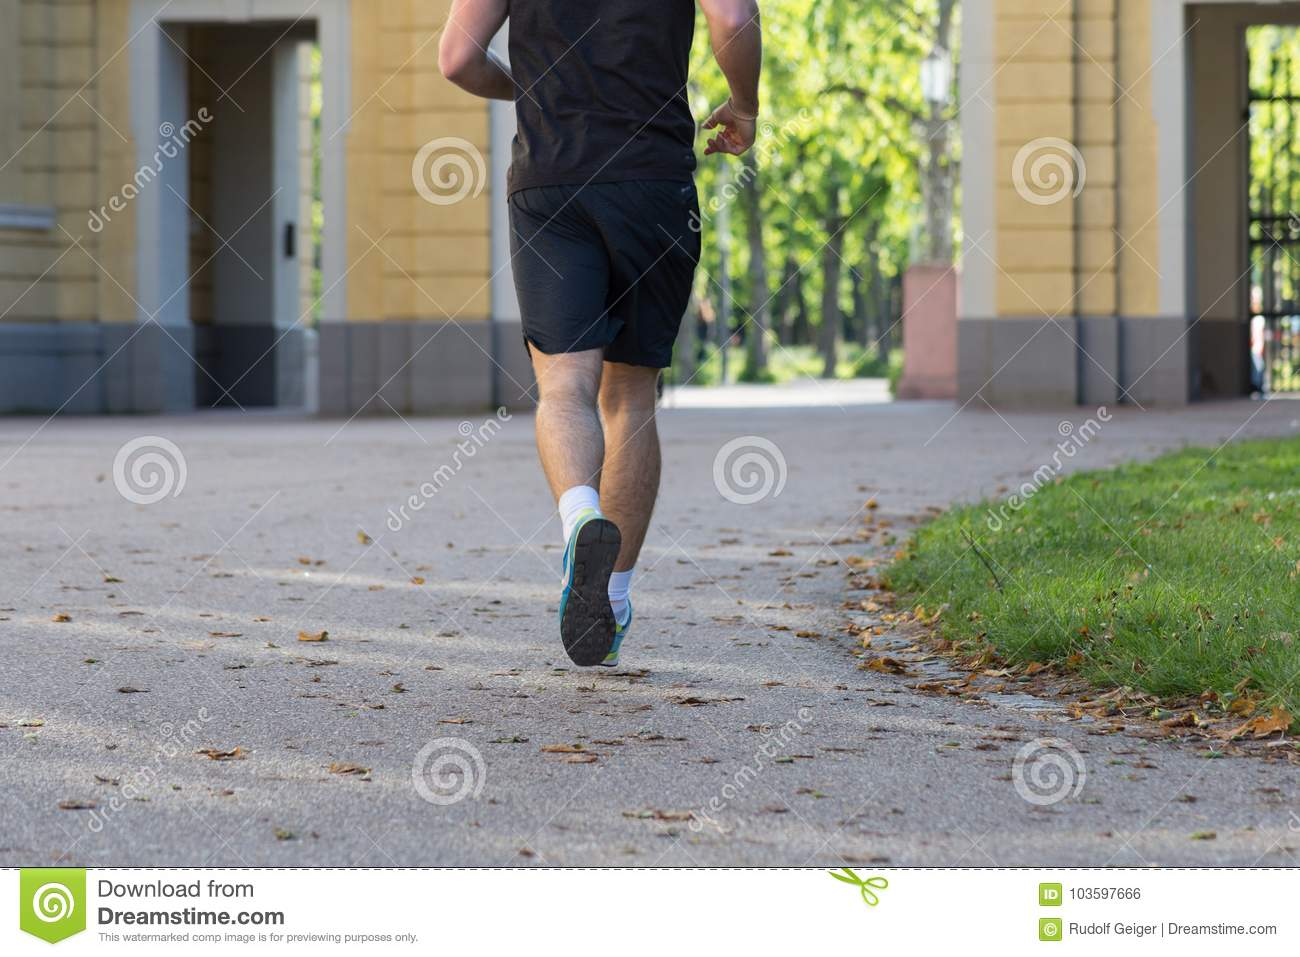 Running Free In Germanys Outdoor >> Running Fitness Stock Photo Image Of Young Lifestyle 103597666